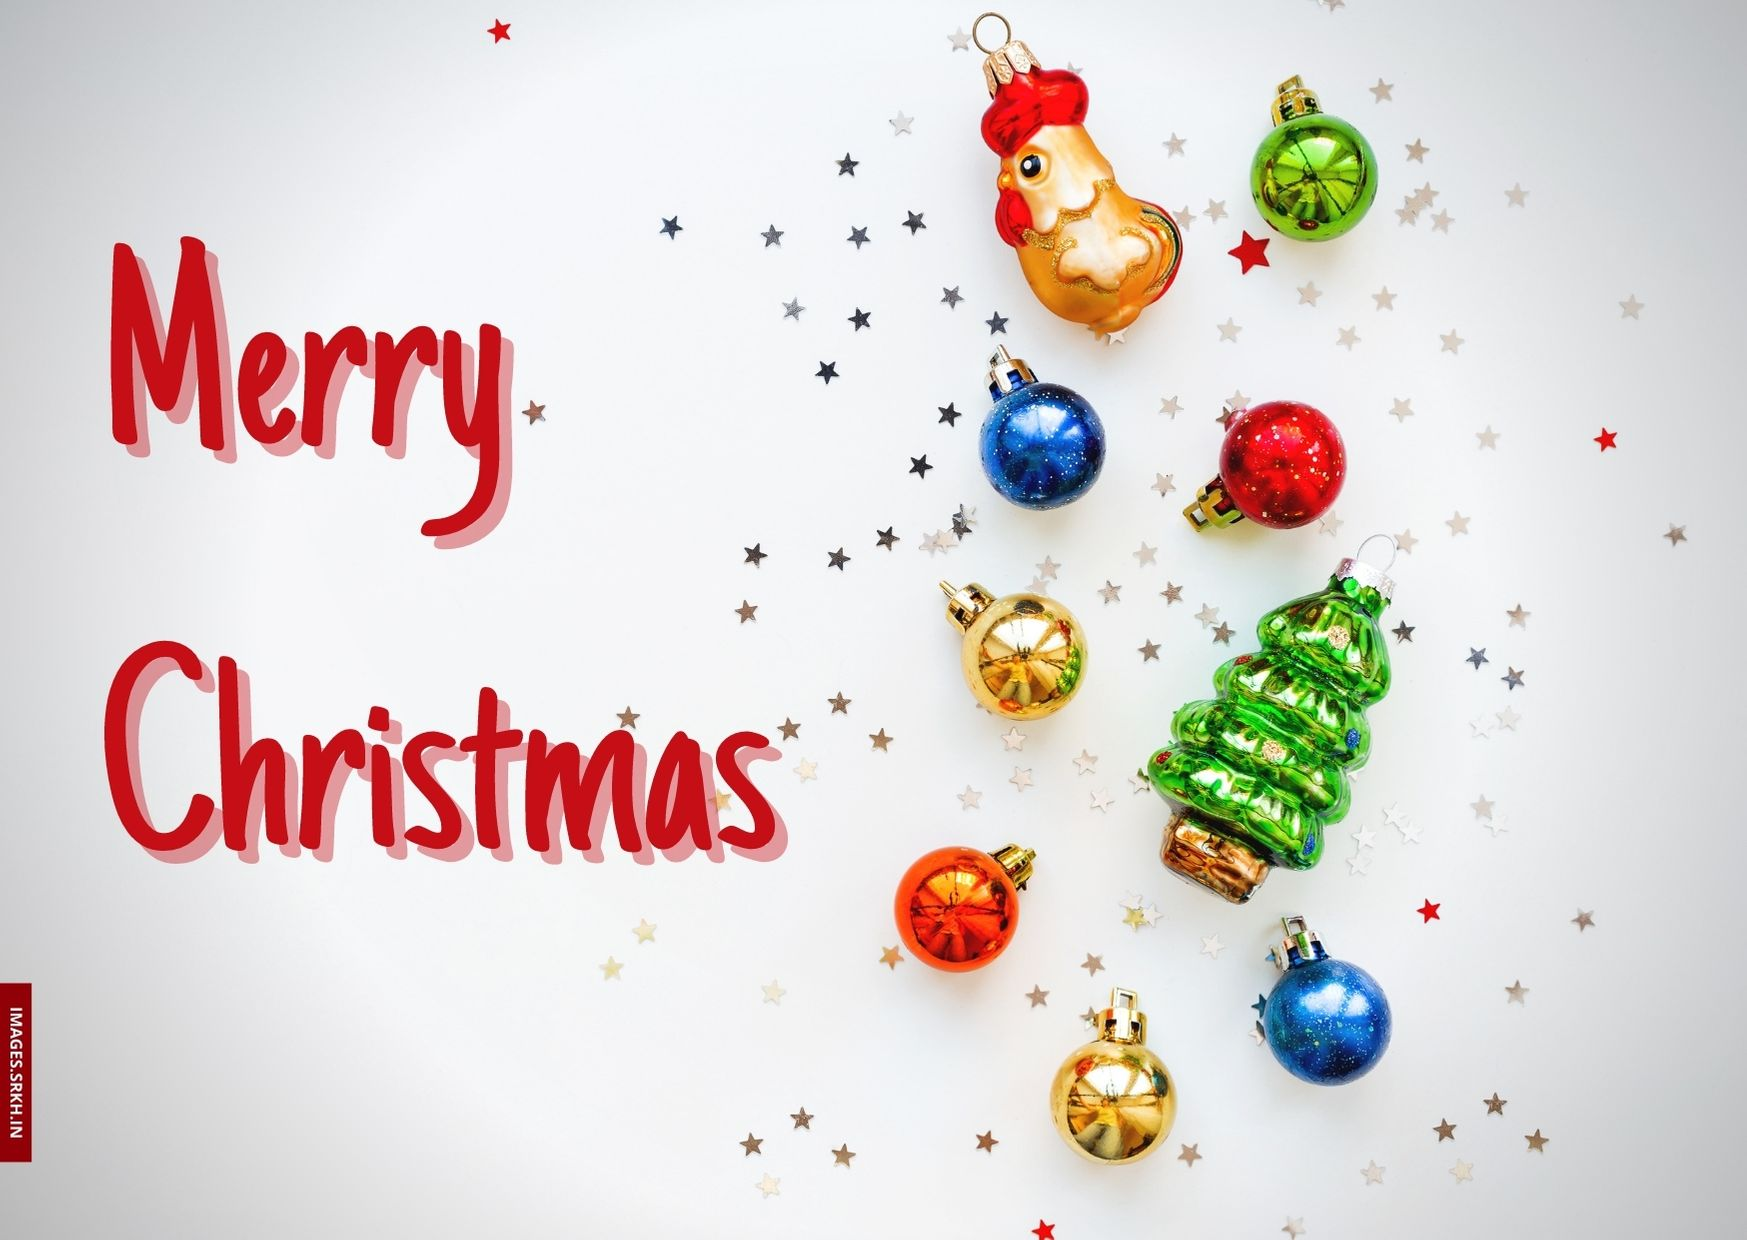 Happy Christmas Images 2020